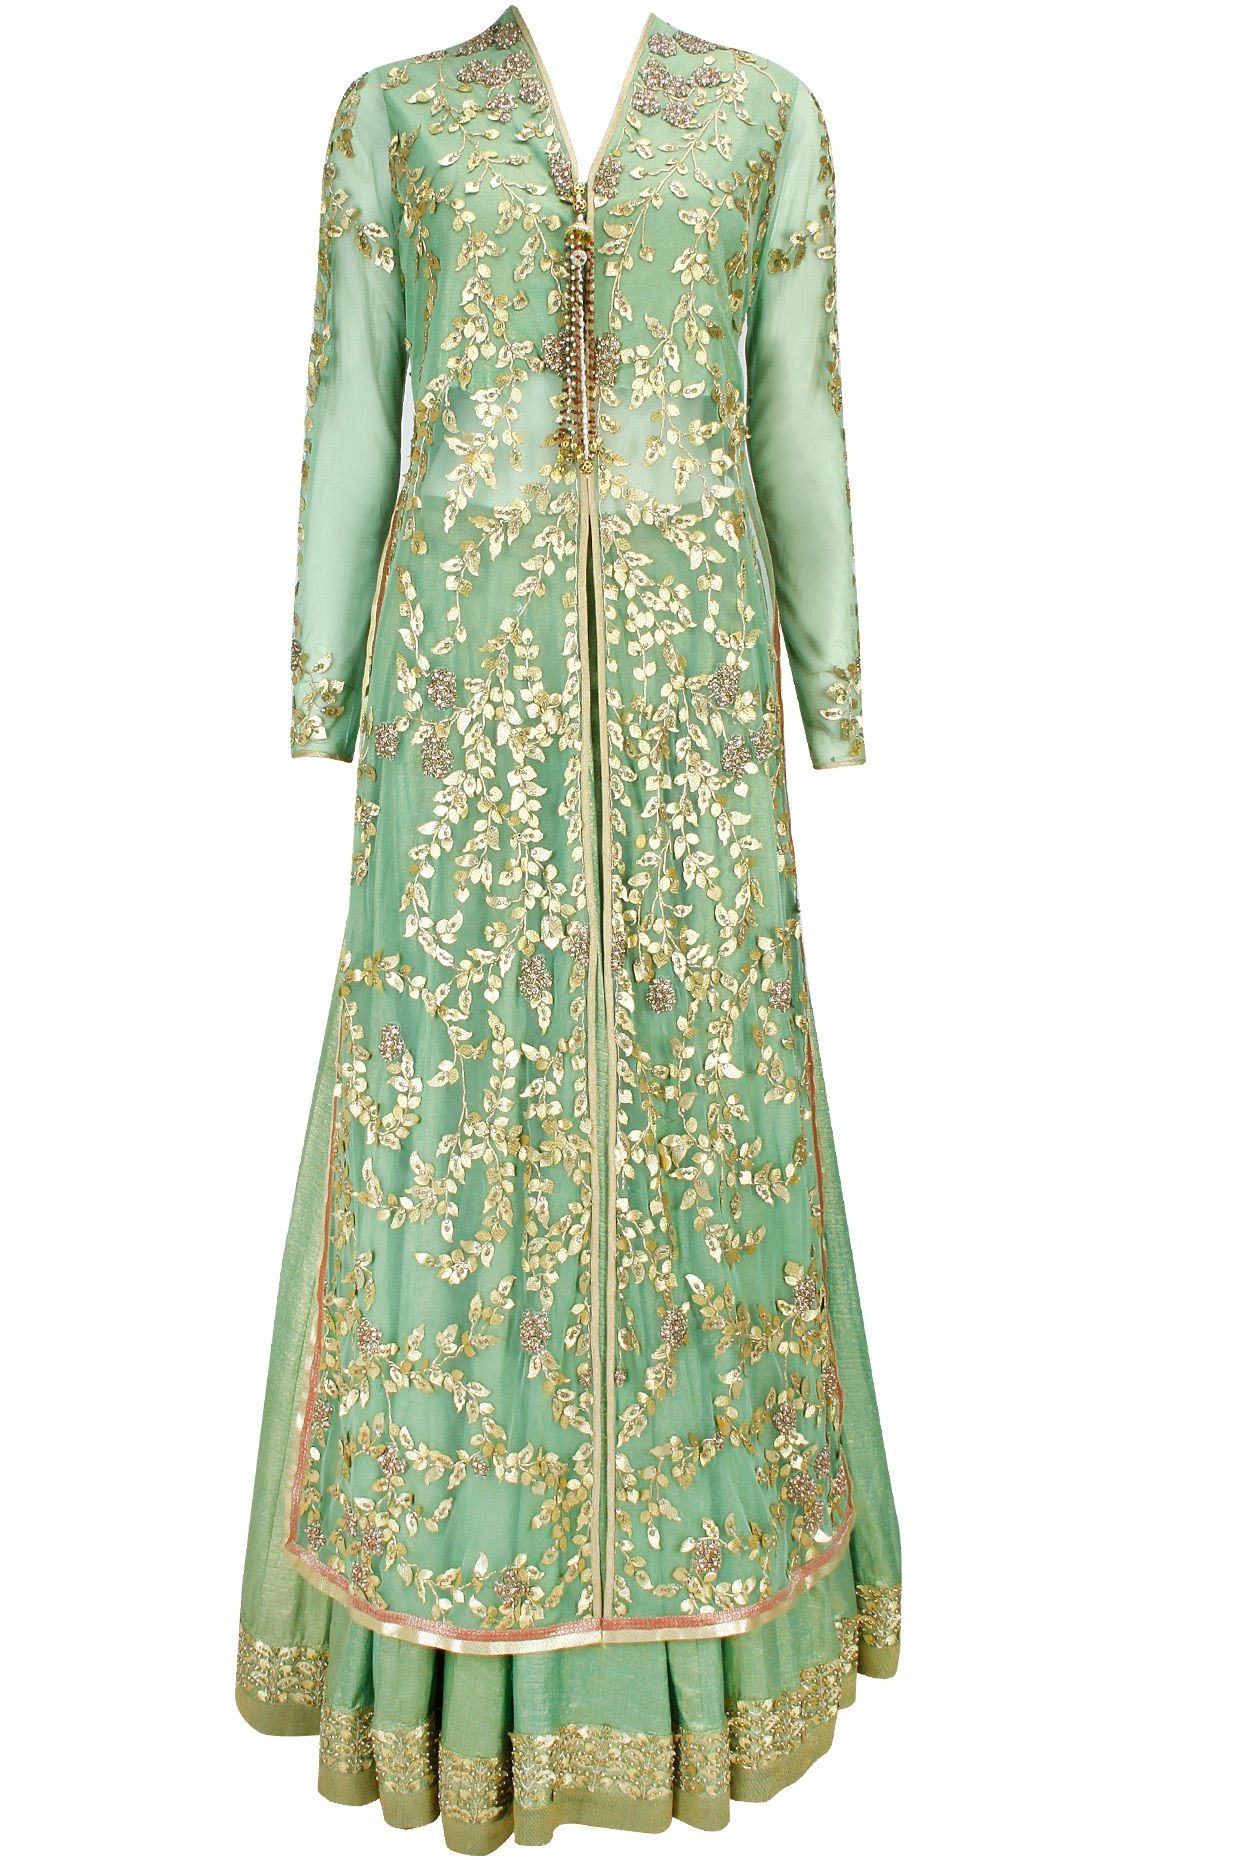 b4cef3ca69 Sage green gota patti long jacket with foil lehenga and dupatta available  only at Pernia's Pop-Up Shop.